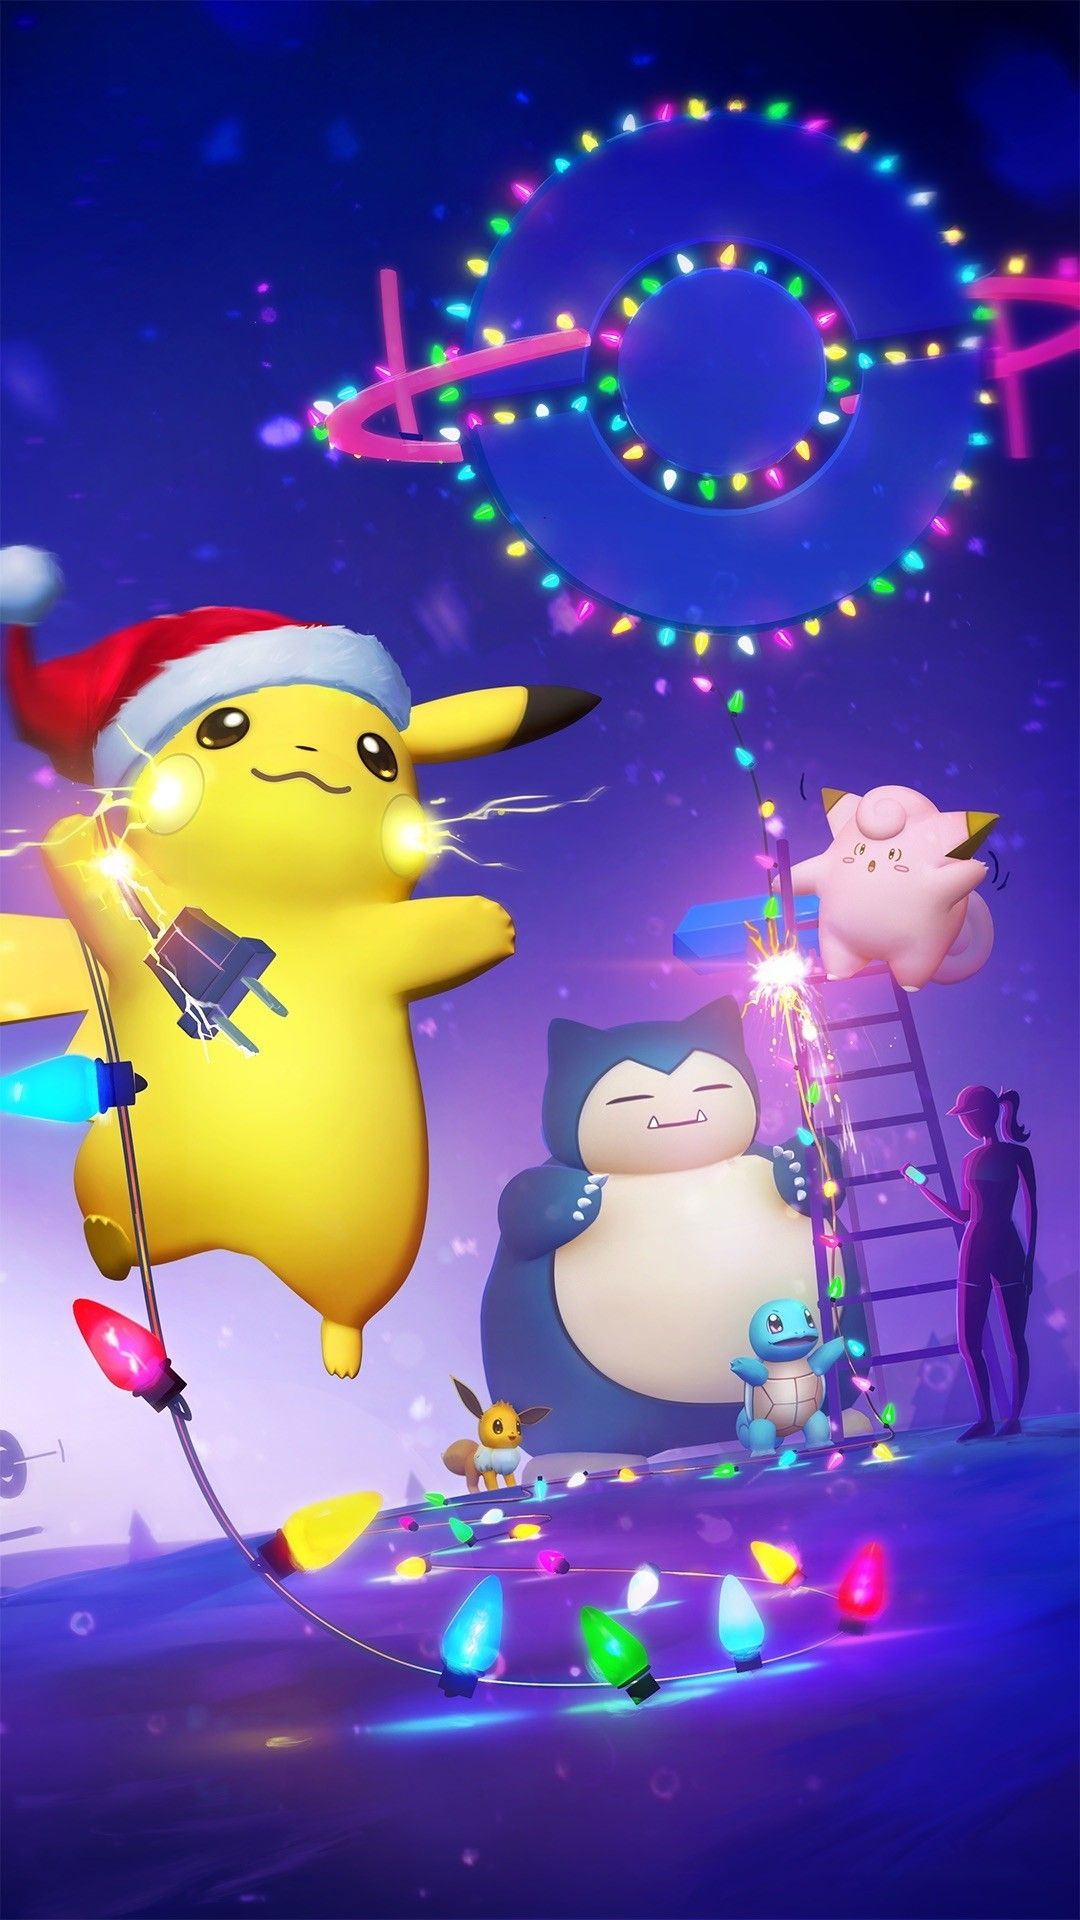 Pokemon Wallpaper Iphone Background Hupages Download Iphone Wallpapers Christmas Phone Wallpaper Cute Pokemon Wallpaper Christmas Pokemon